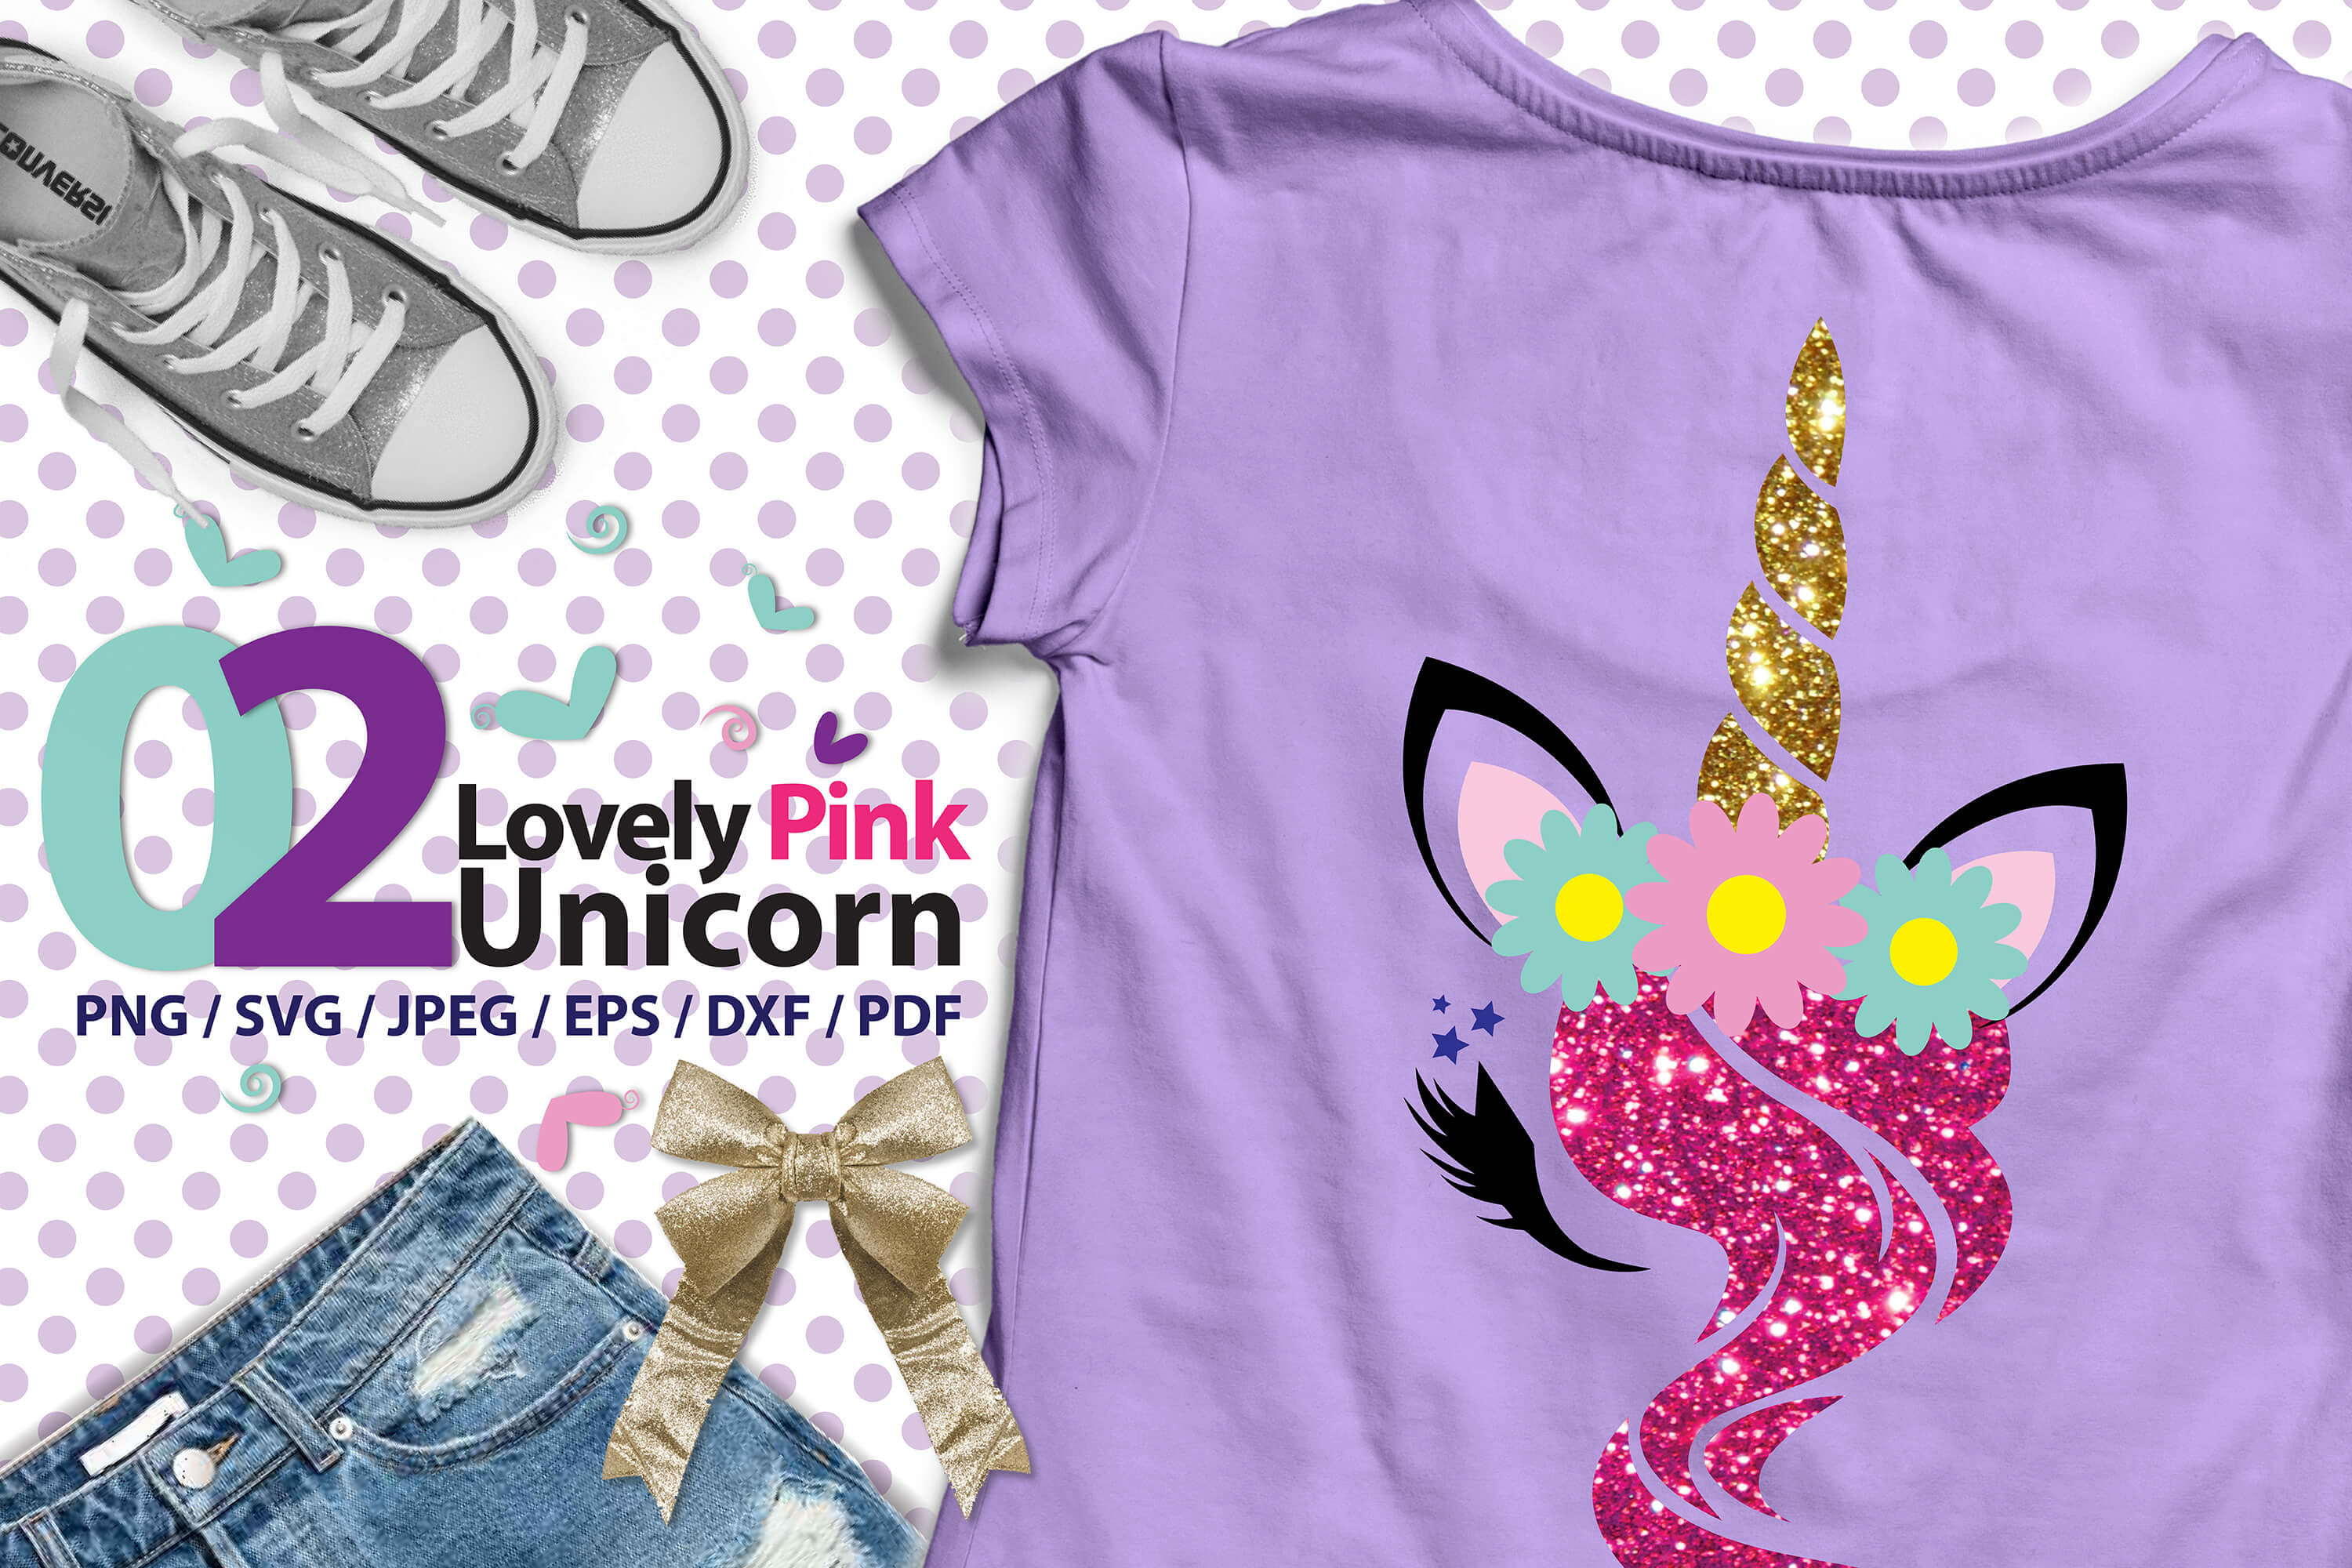 Lovely Pink Unicorn 02 high res svg example image 1